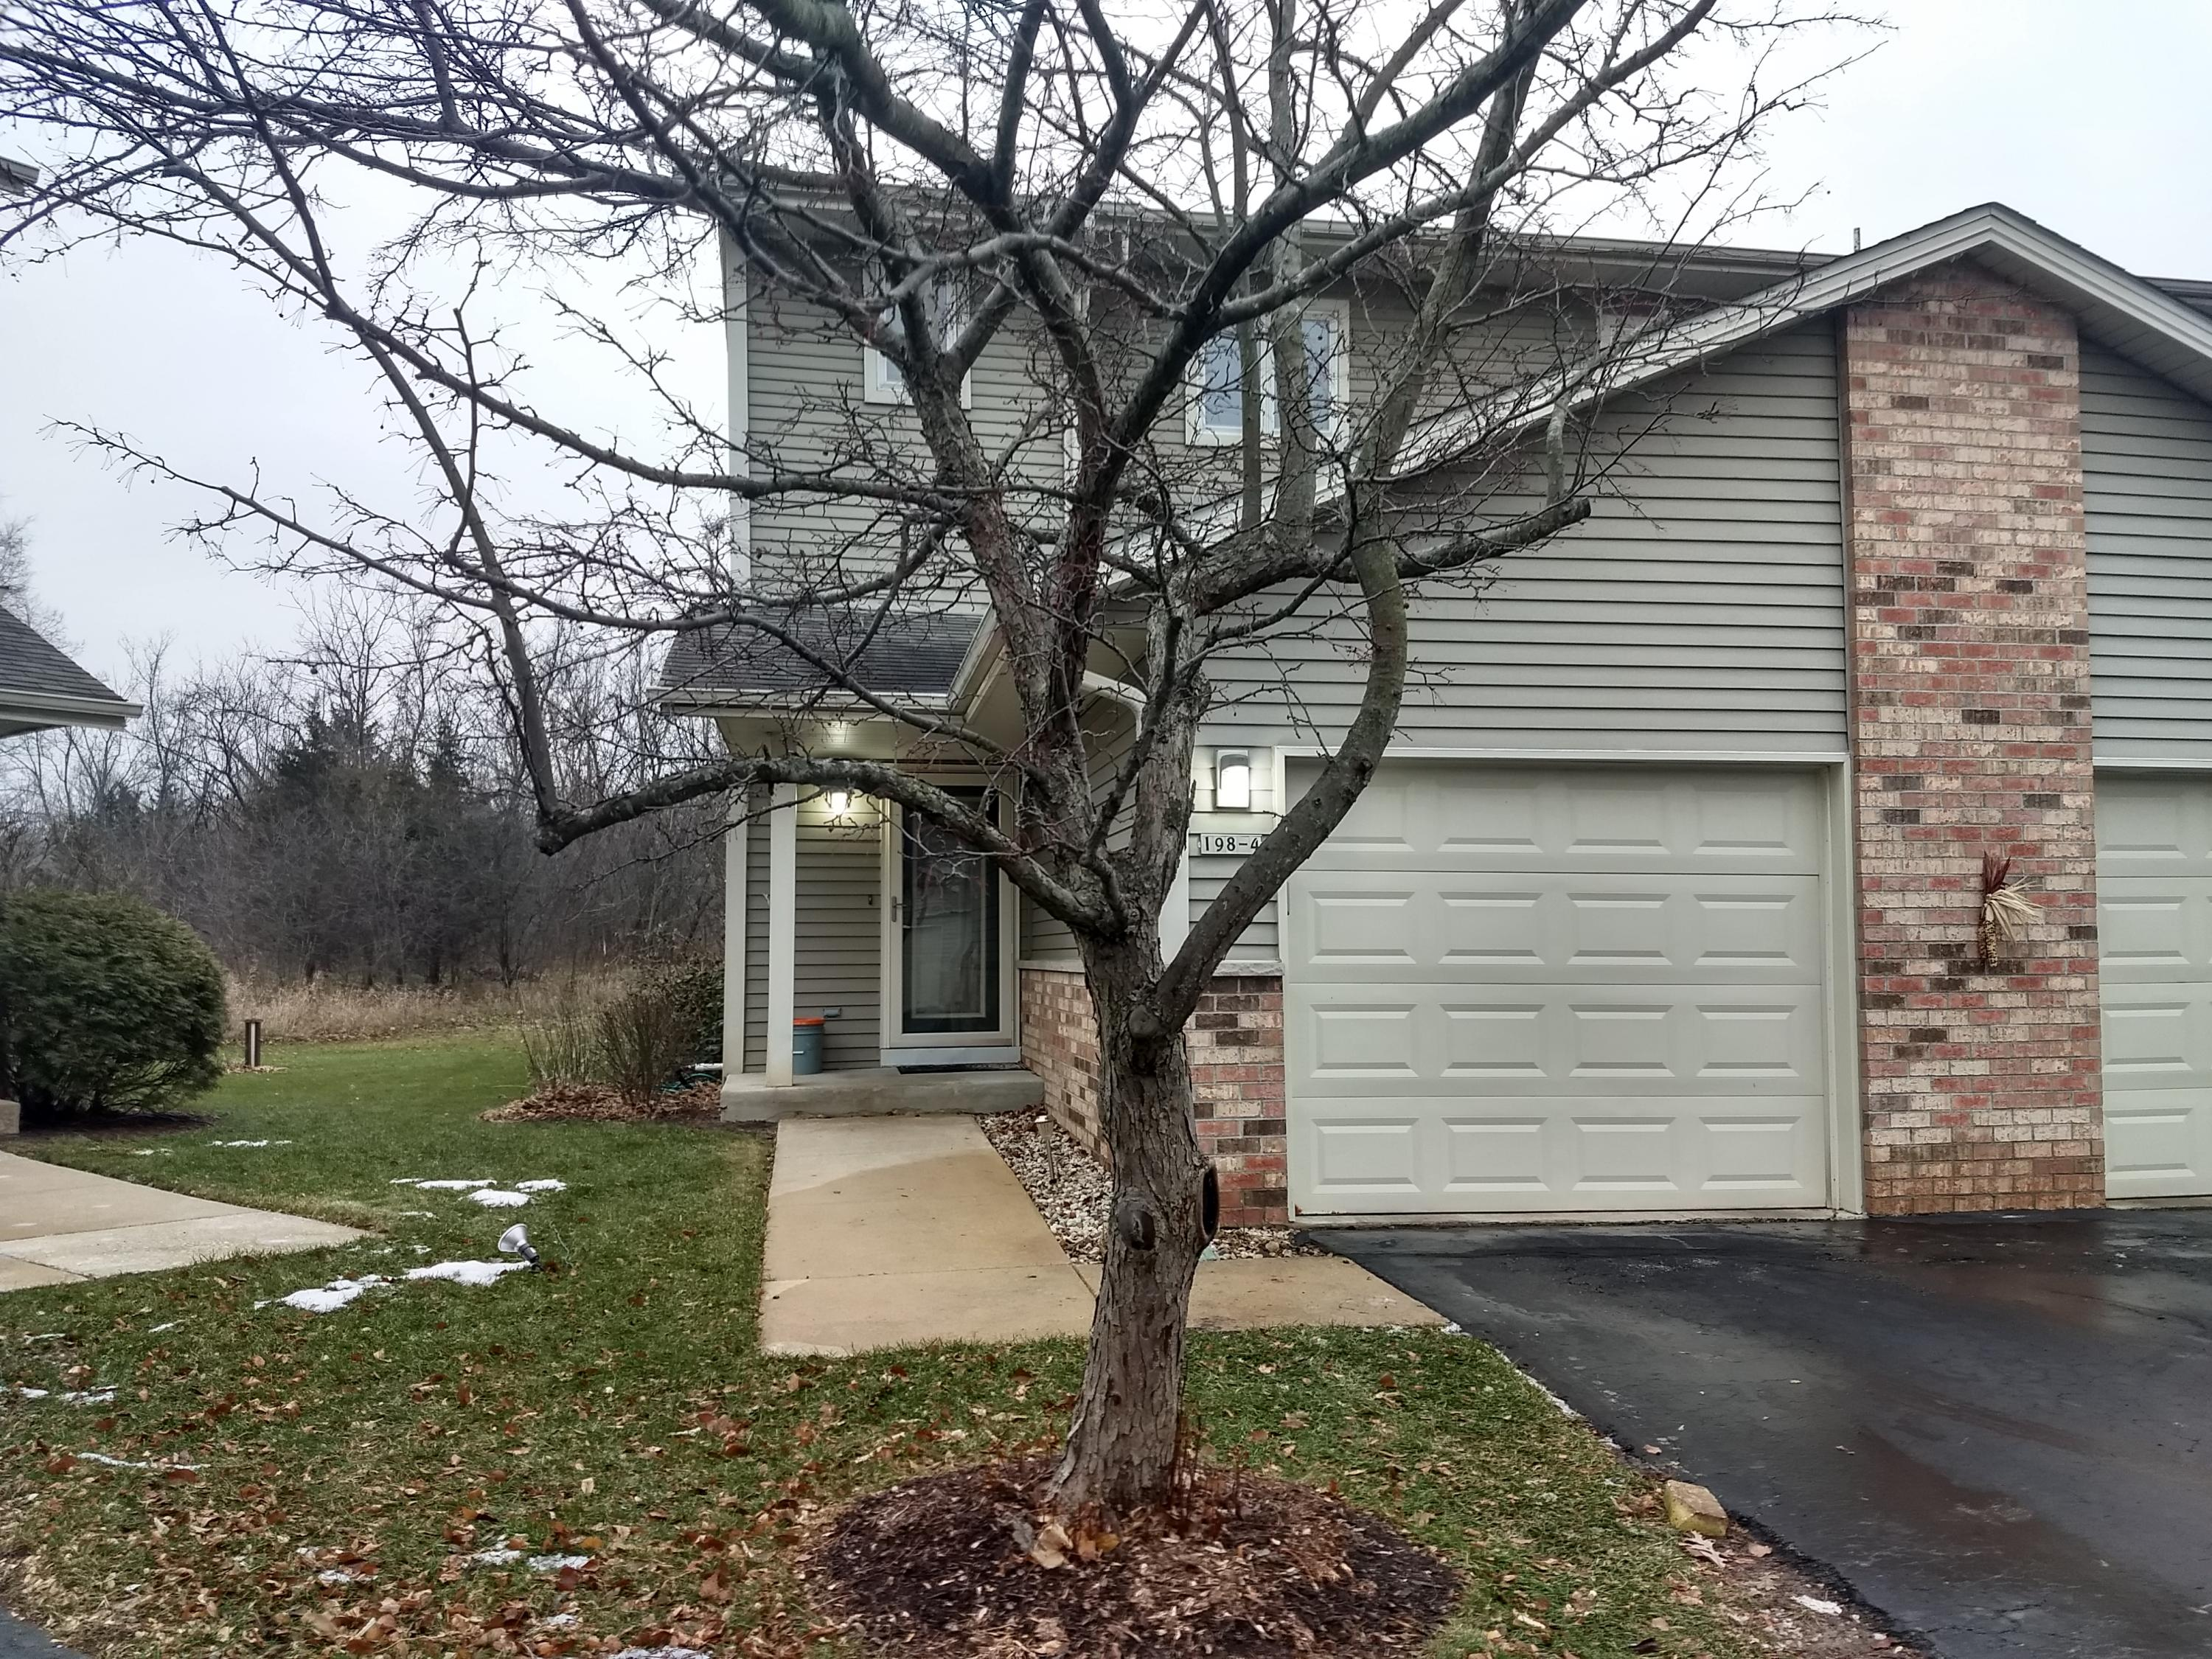 198 Country Ct, Delafield, Wisconsin 53018, 3 Bedrooms Bedrooms, 6 Rooms Rooms,2 BathroomsBathrooms,Condominiums,For Sale,Country Ct,1,1615681